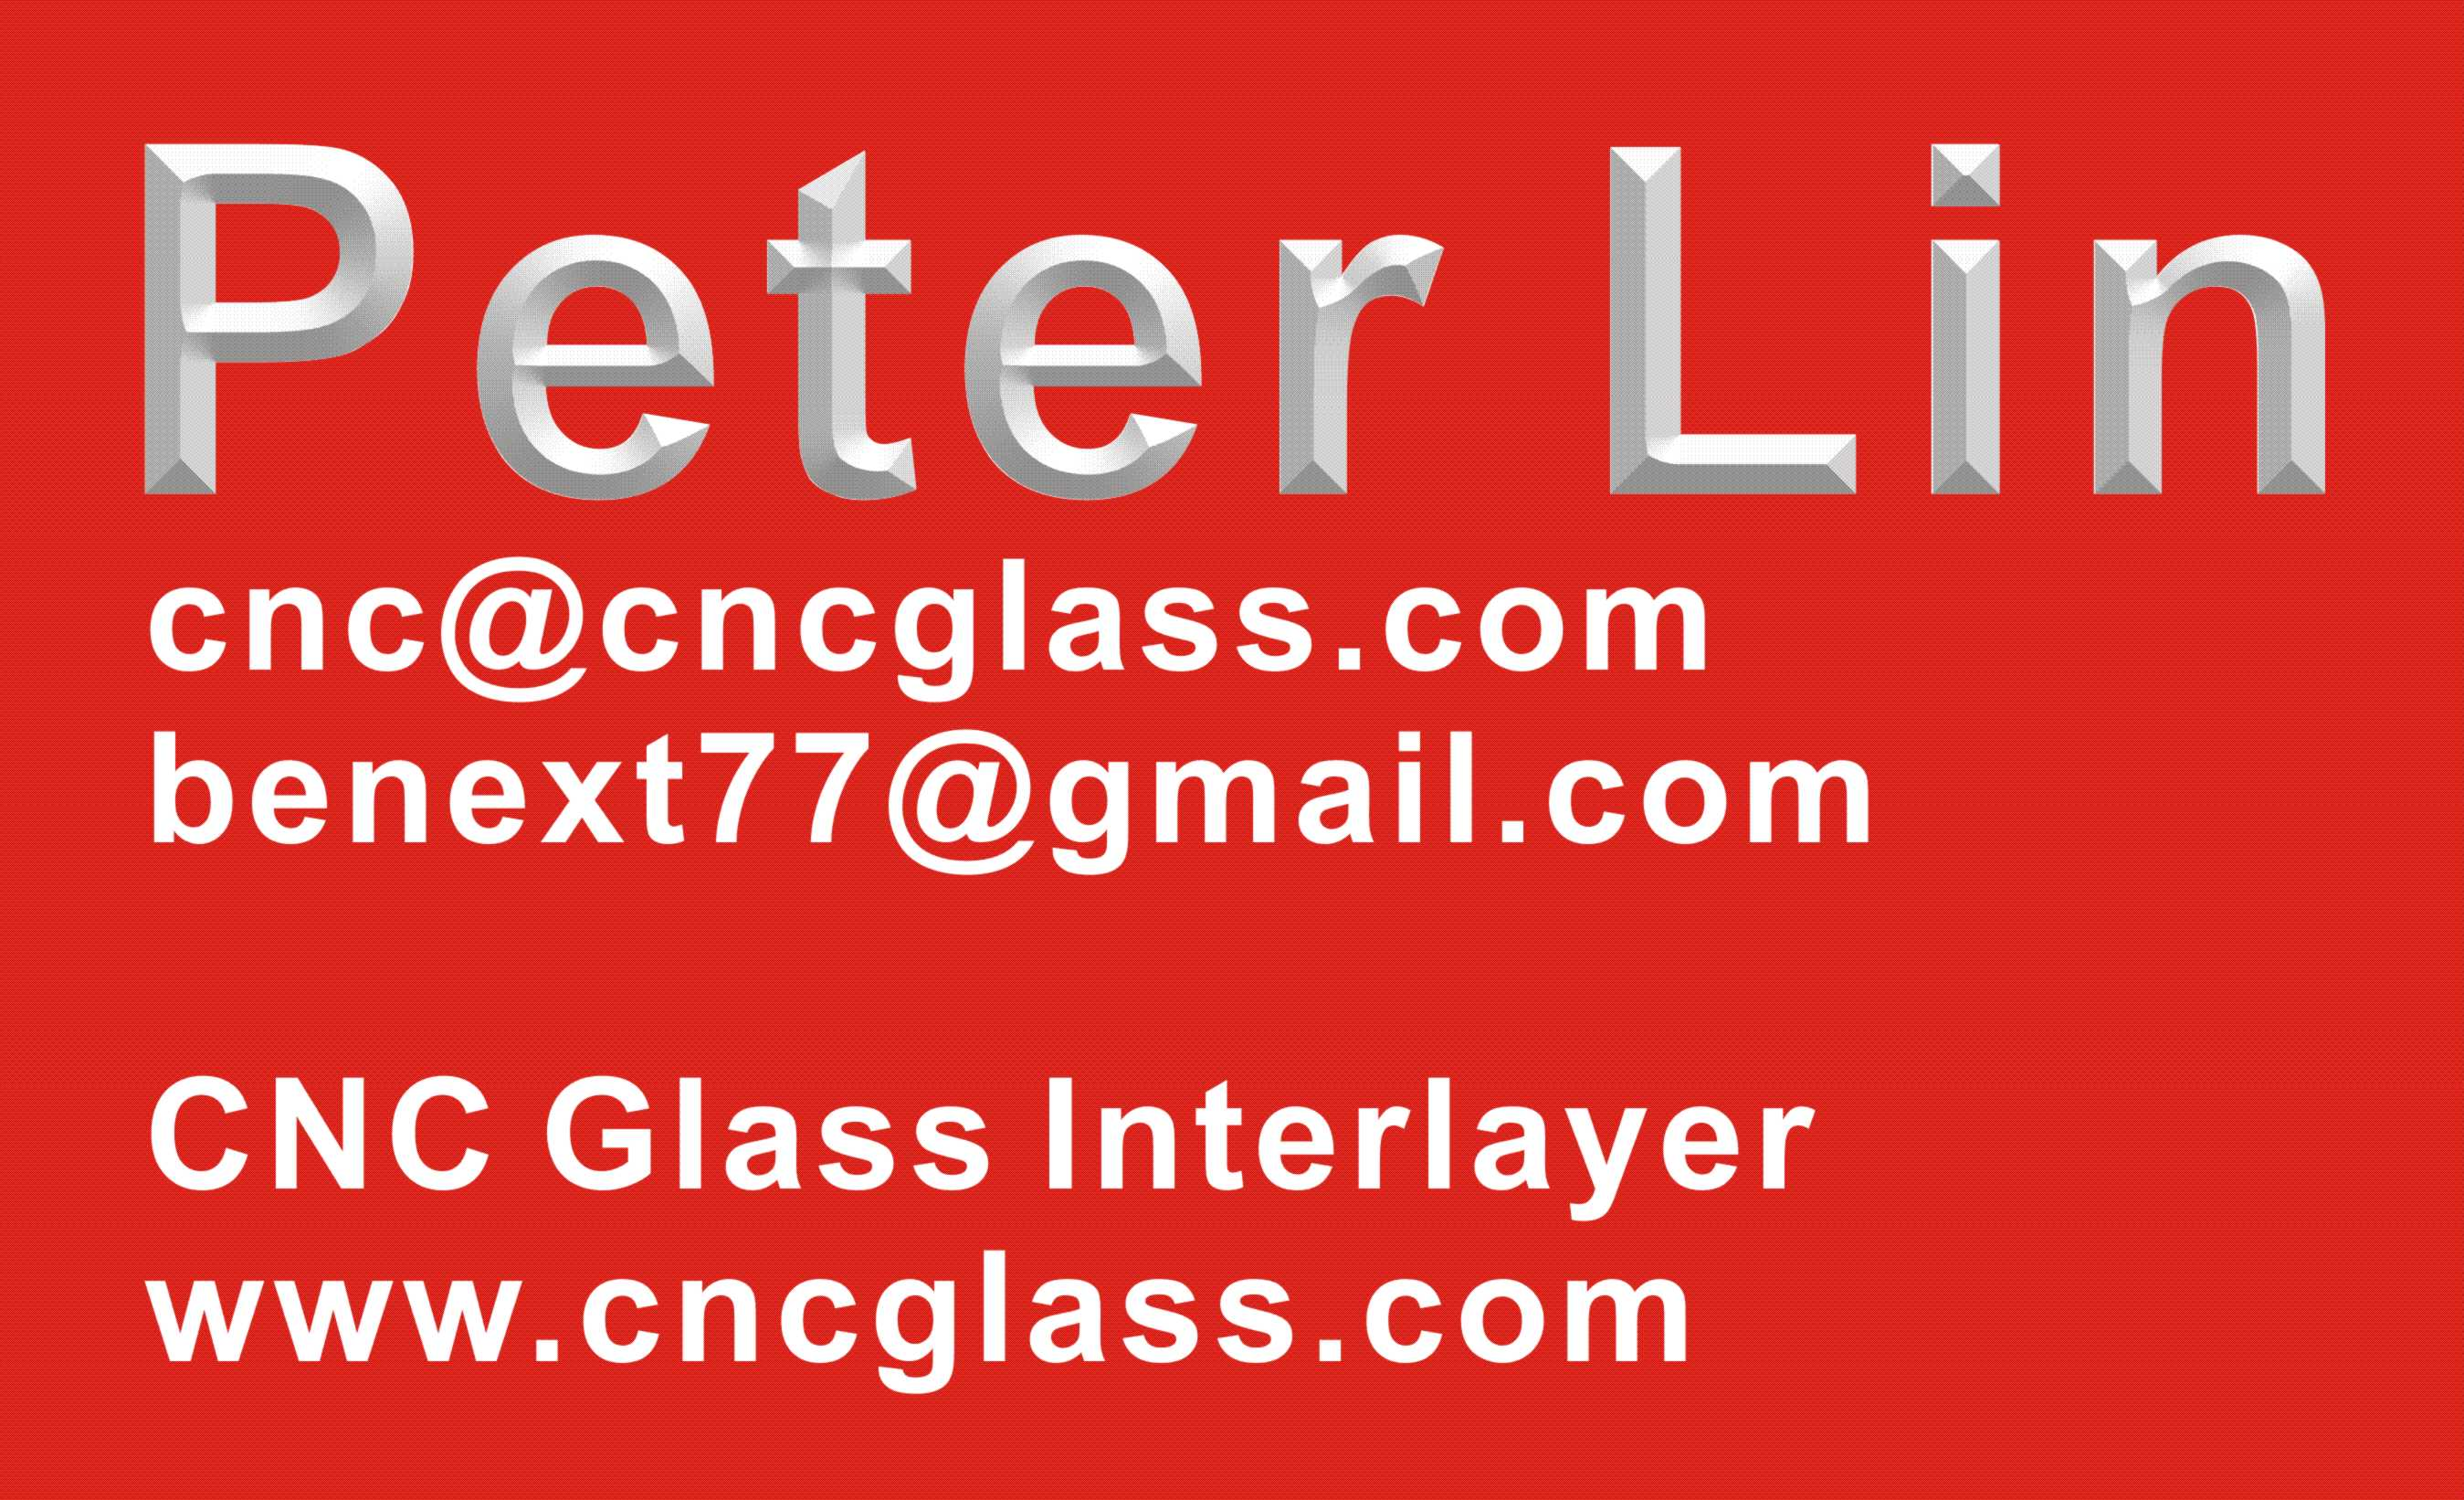 Peter Lin CNC Glass Interlayer Tech